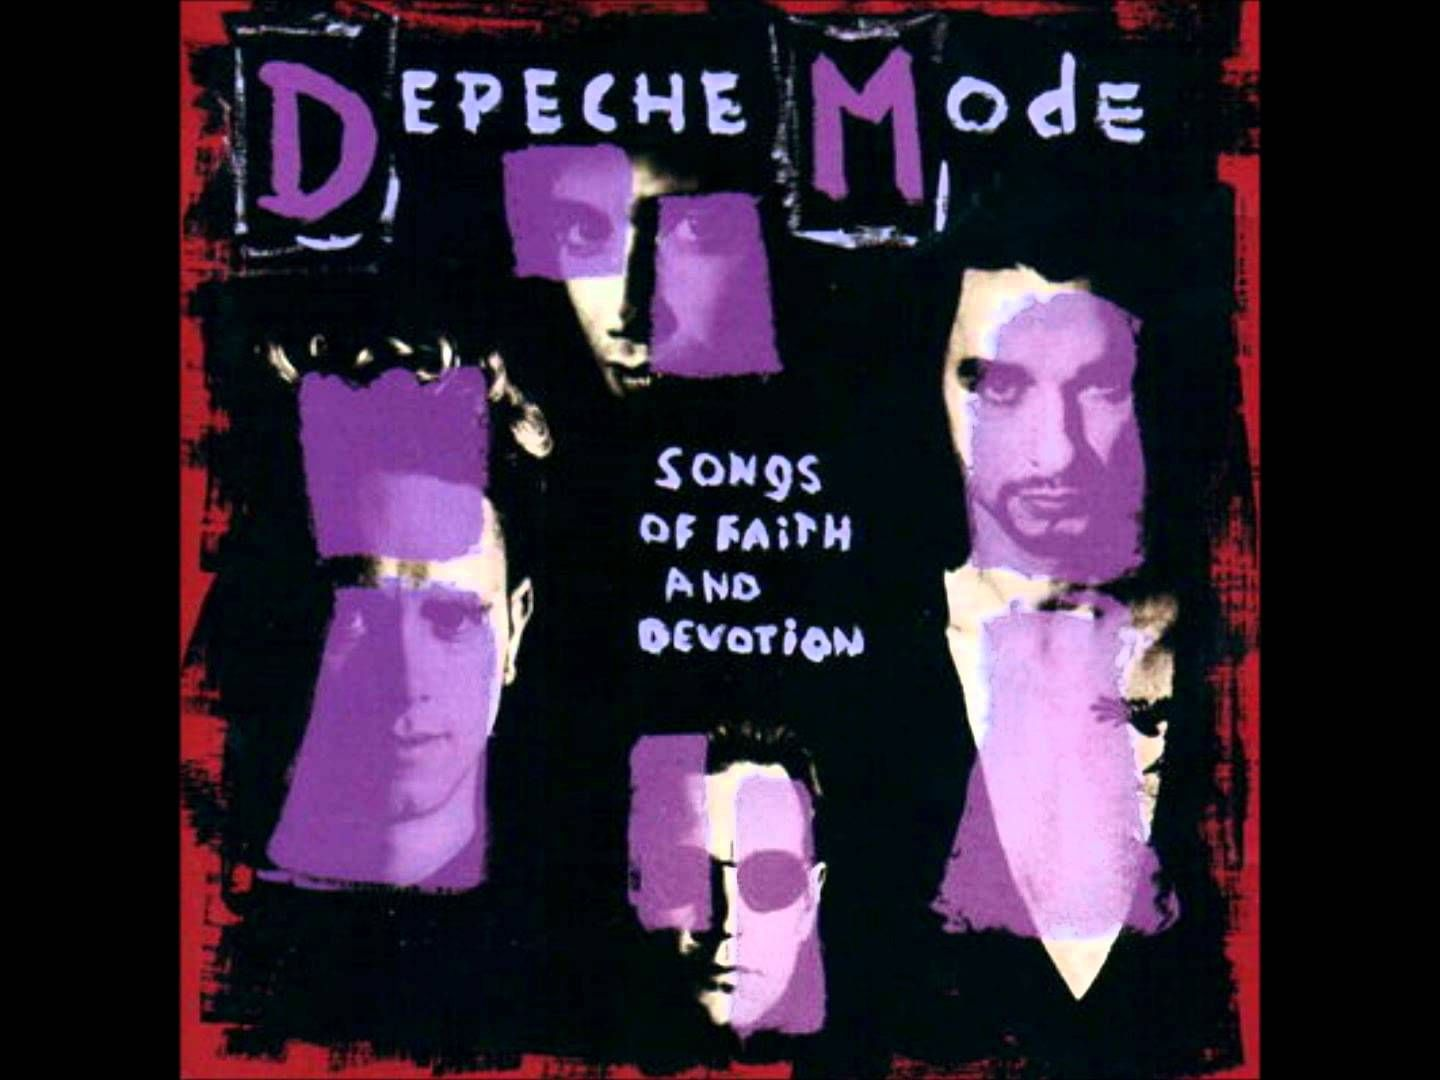 When I Worked At Hot Topic We Played Depeche Mode All The Time It Always Set A Mood In Your Room With Images Depeche Mode Songs Depeche Mode Albums Depeche Mode